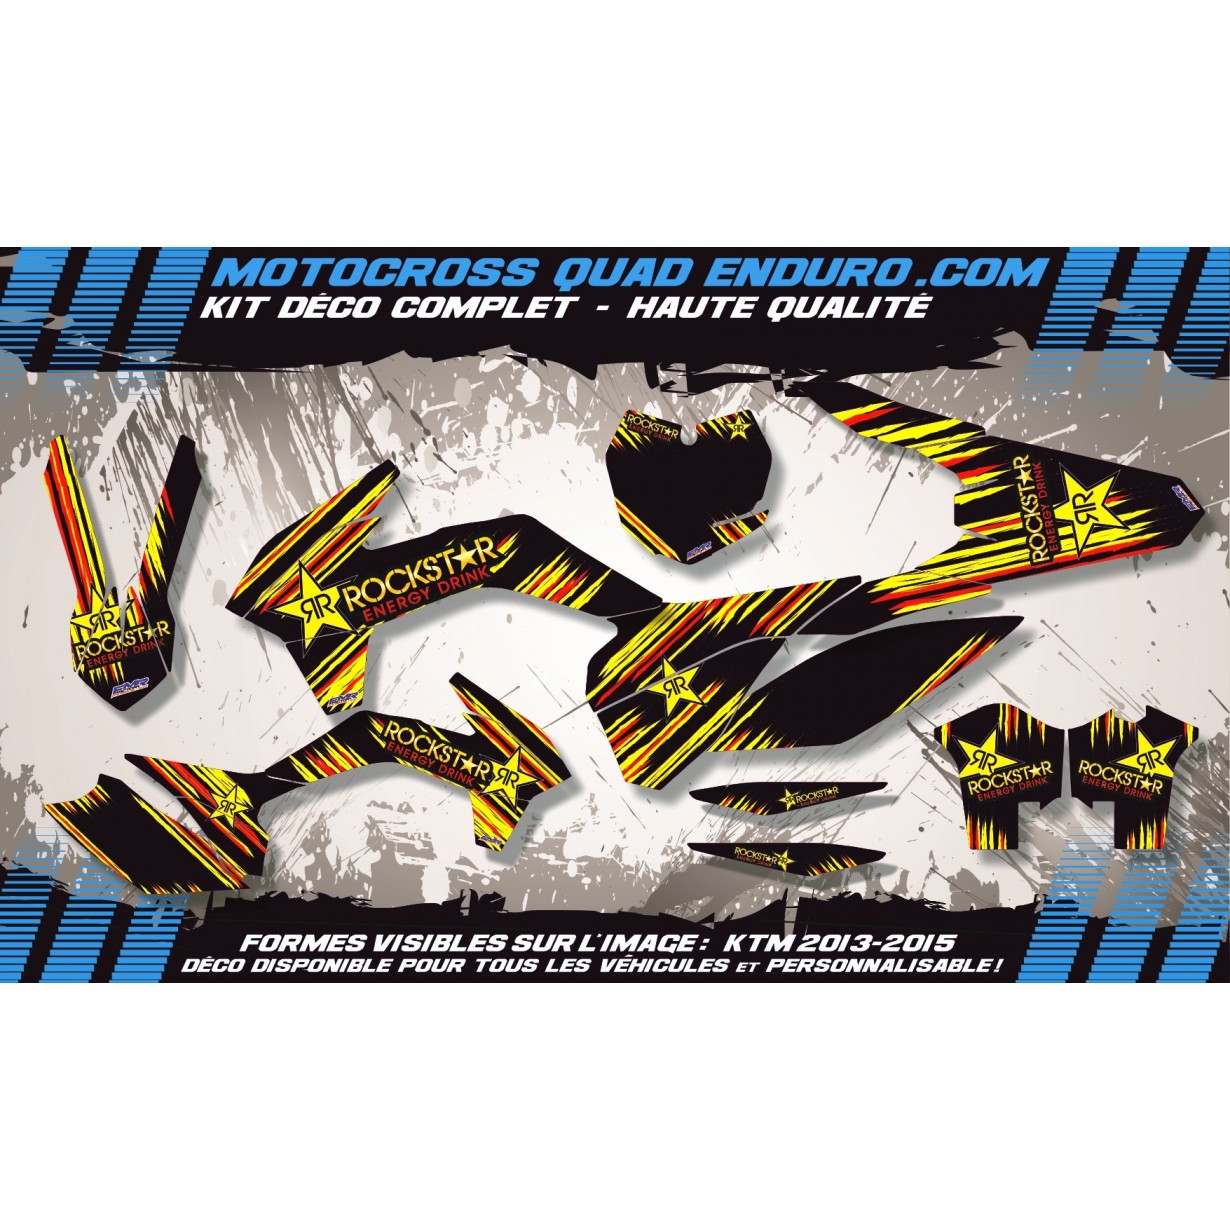 KIT DÉCO Perso 50 RR enduro 2007 Factory Replica BETA MA10G